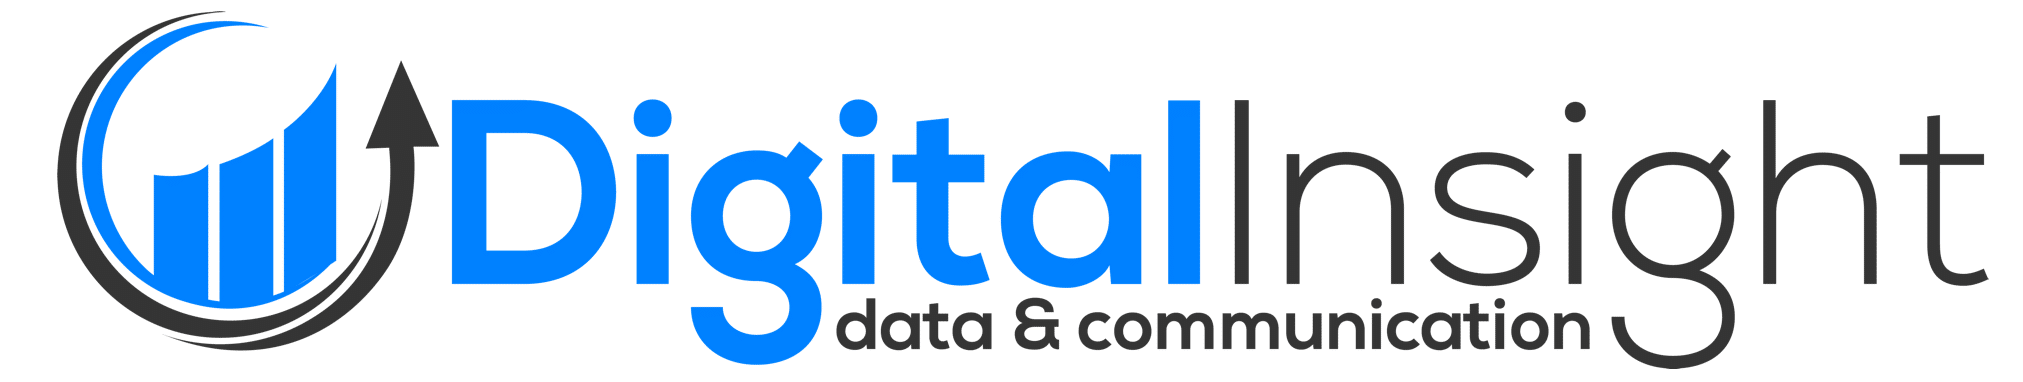 Digital Insight® - Analytics & Digitale Kommunikation aus Düsseldorf